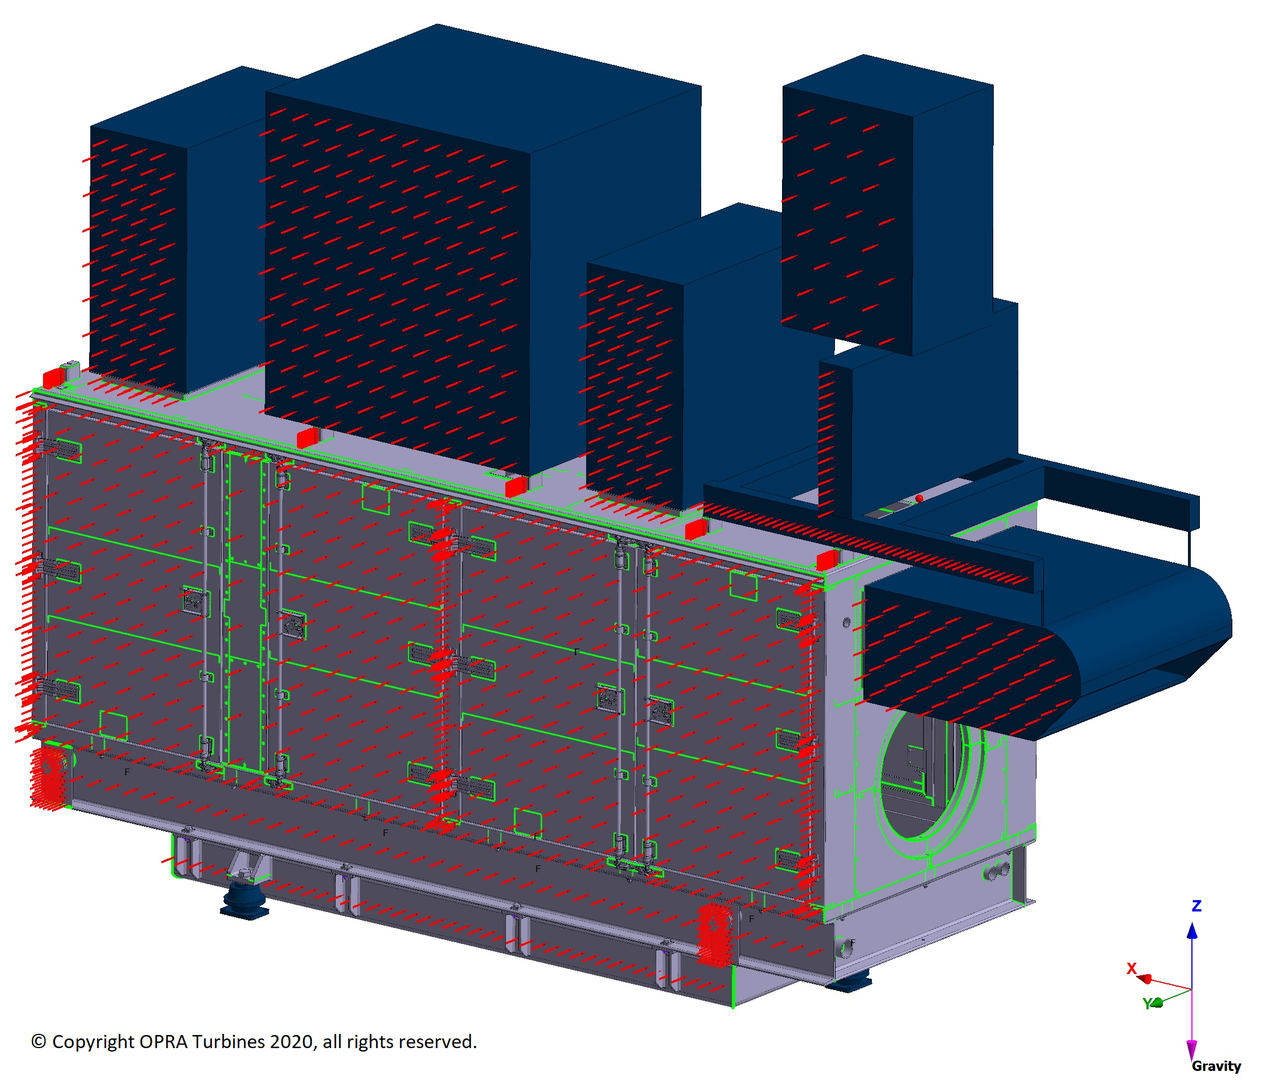 Structural Mechanical Analysis FEA FEM Construction - Gas Turbine Package - Machinebouw - Skid